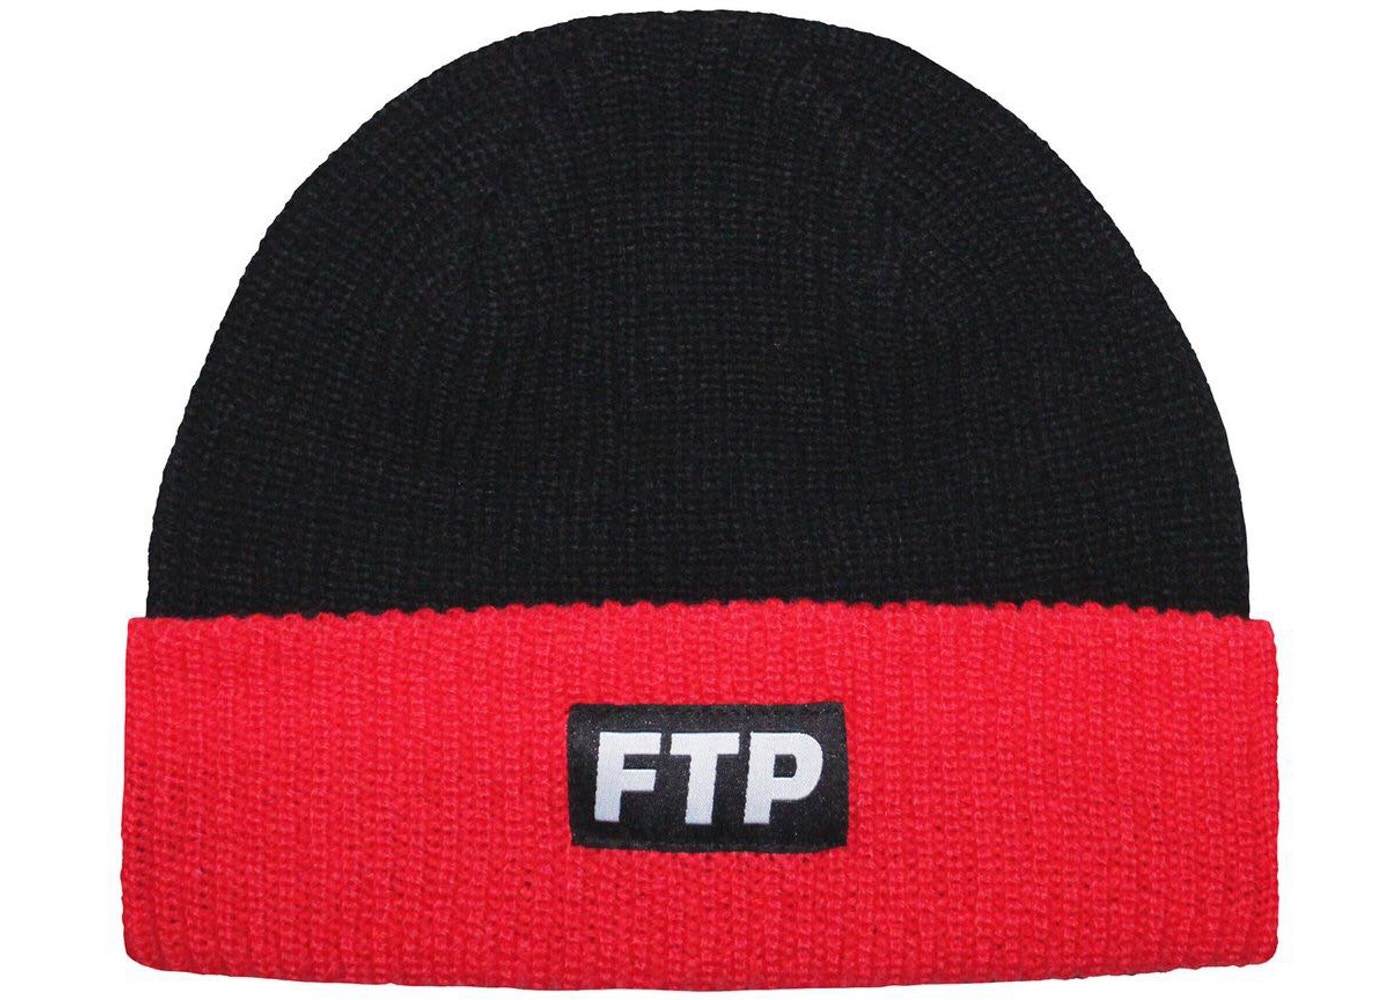 3ce35bc374b Other Brands FTP - Buy   Sell Streetwear